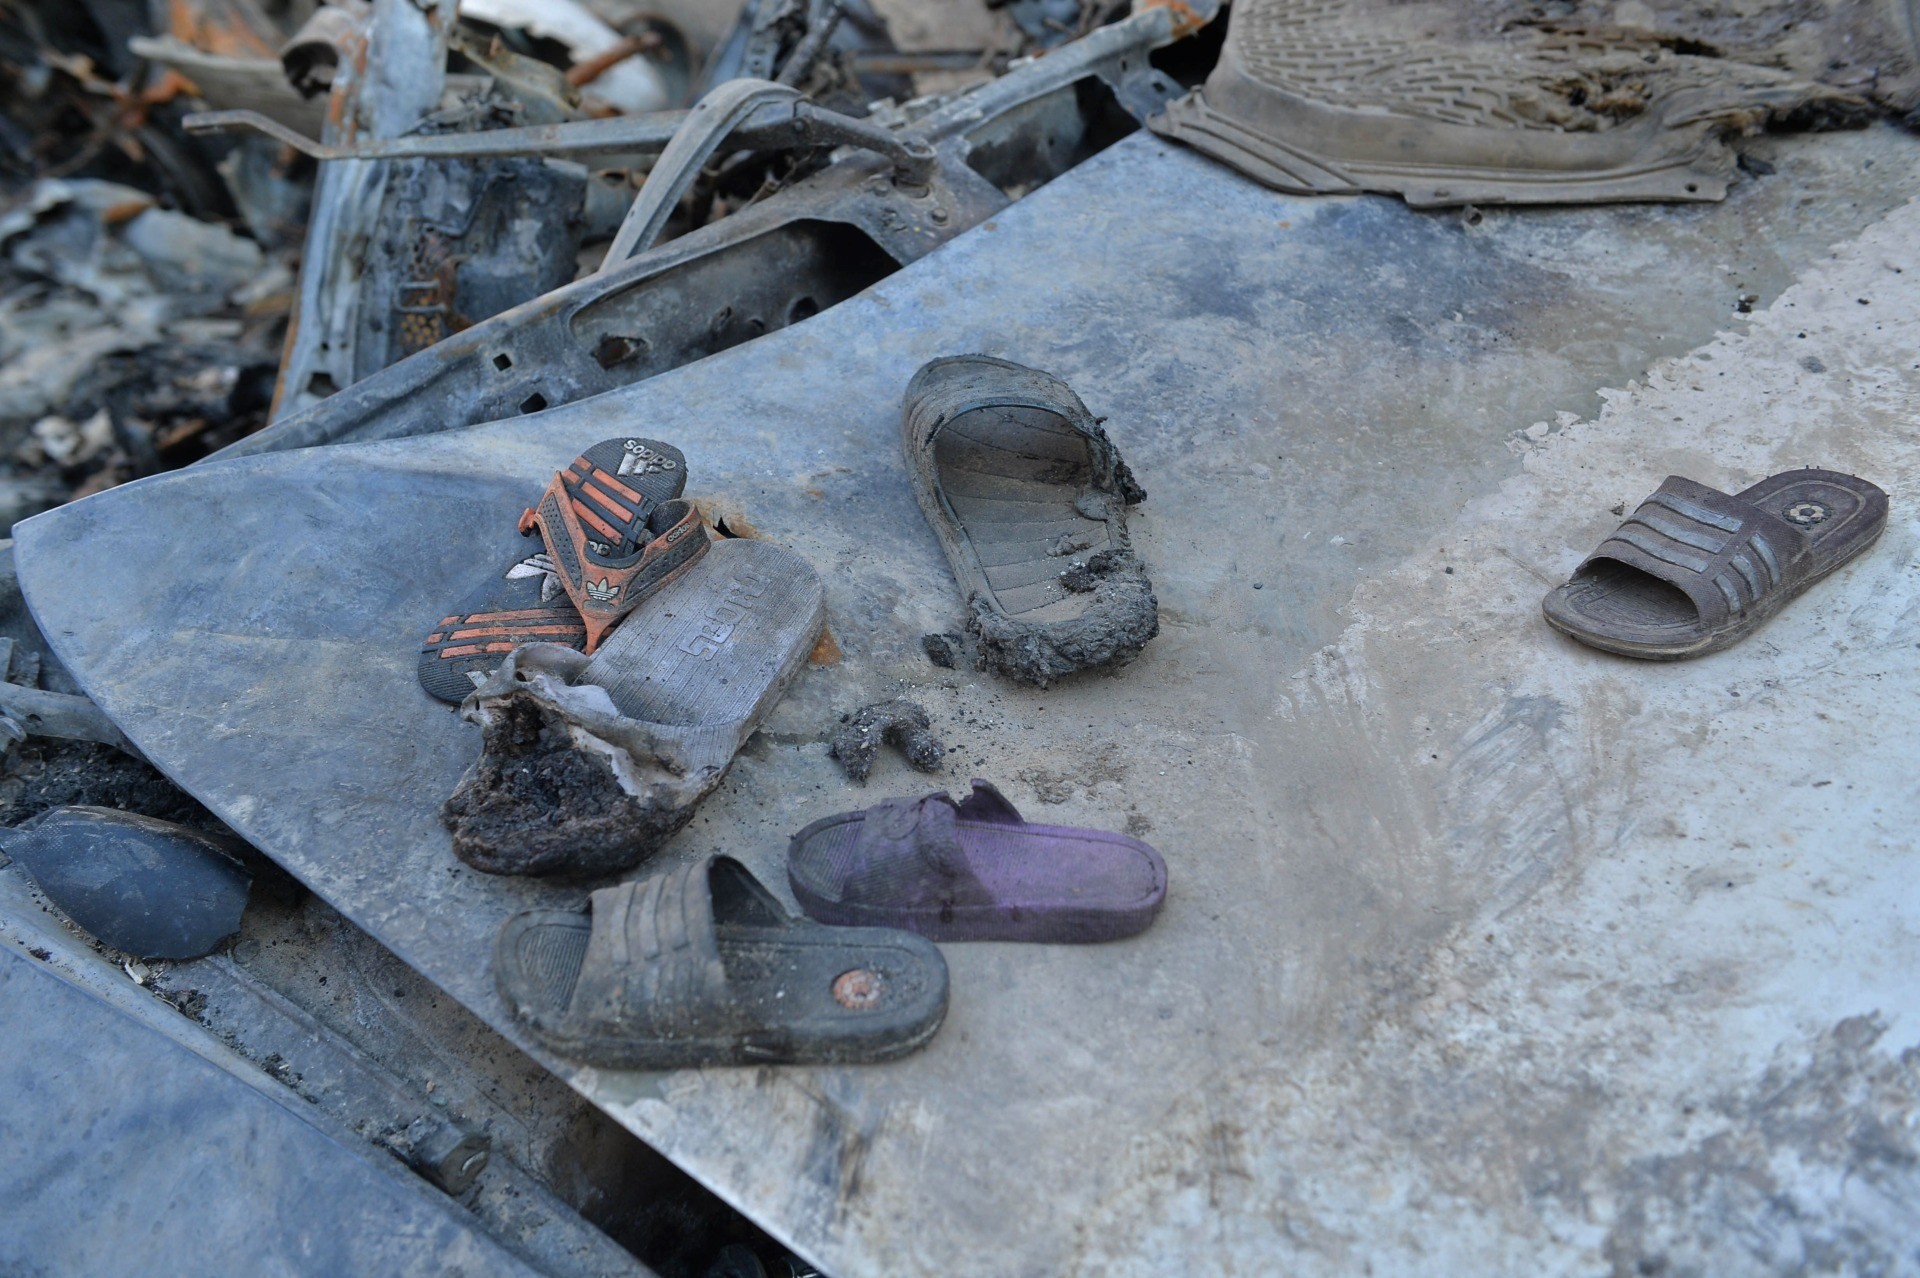 Partially burnt footwears are pictured amid the debris of the house of Ezmarai Ahmadi that was damaged in a US drone strike in the Kwaja Burga neighbourhood of Kabul on September 18, 2021. - Ezmarai Ahmadi was wrongly identified as an Islamic State militant by US intelligence, who tracked his white Toyota for eight hours on August 29 before targeting the car, killing seven children and three adults. (Photo by Hoshang Hashimi / AFP) (Photo by HOSHANG HASHIMI/AFP via Getty Images)